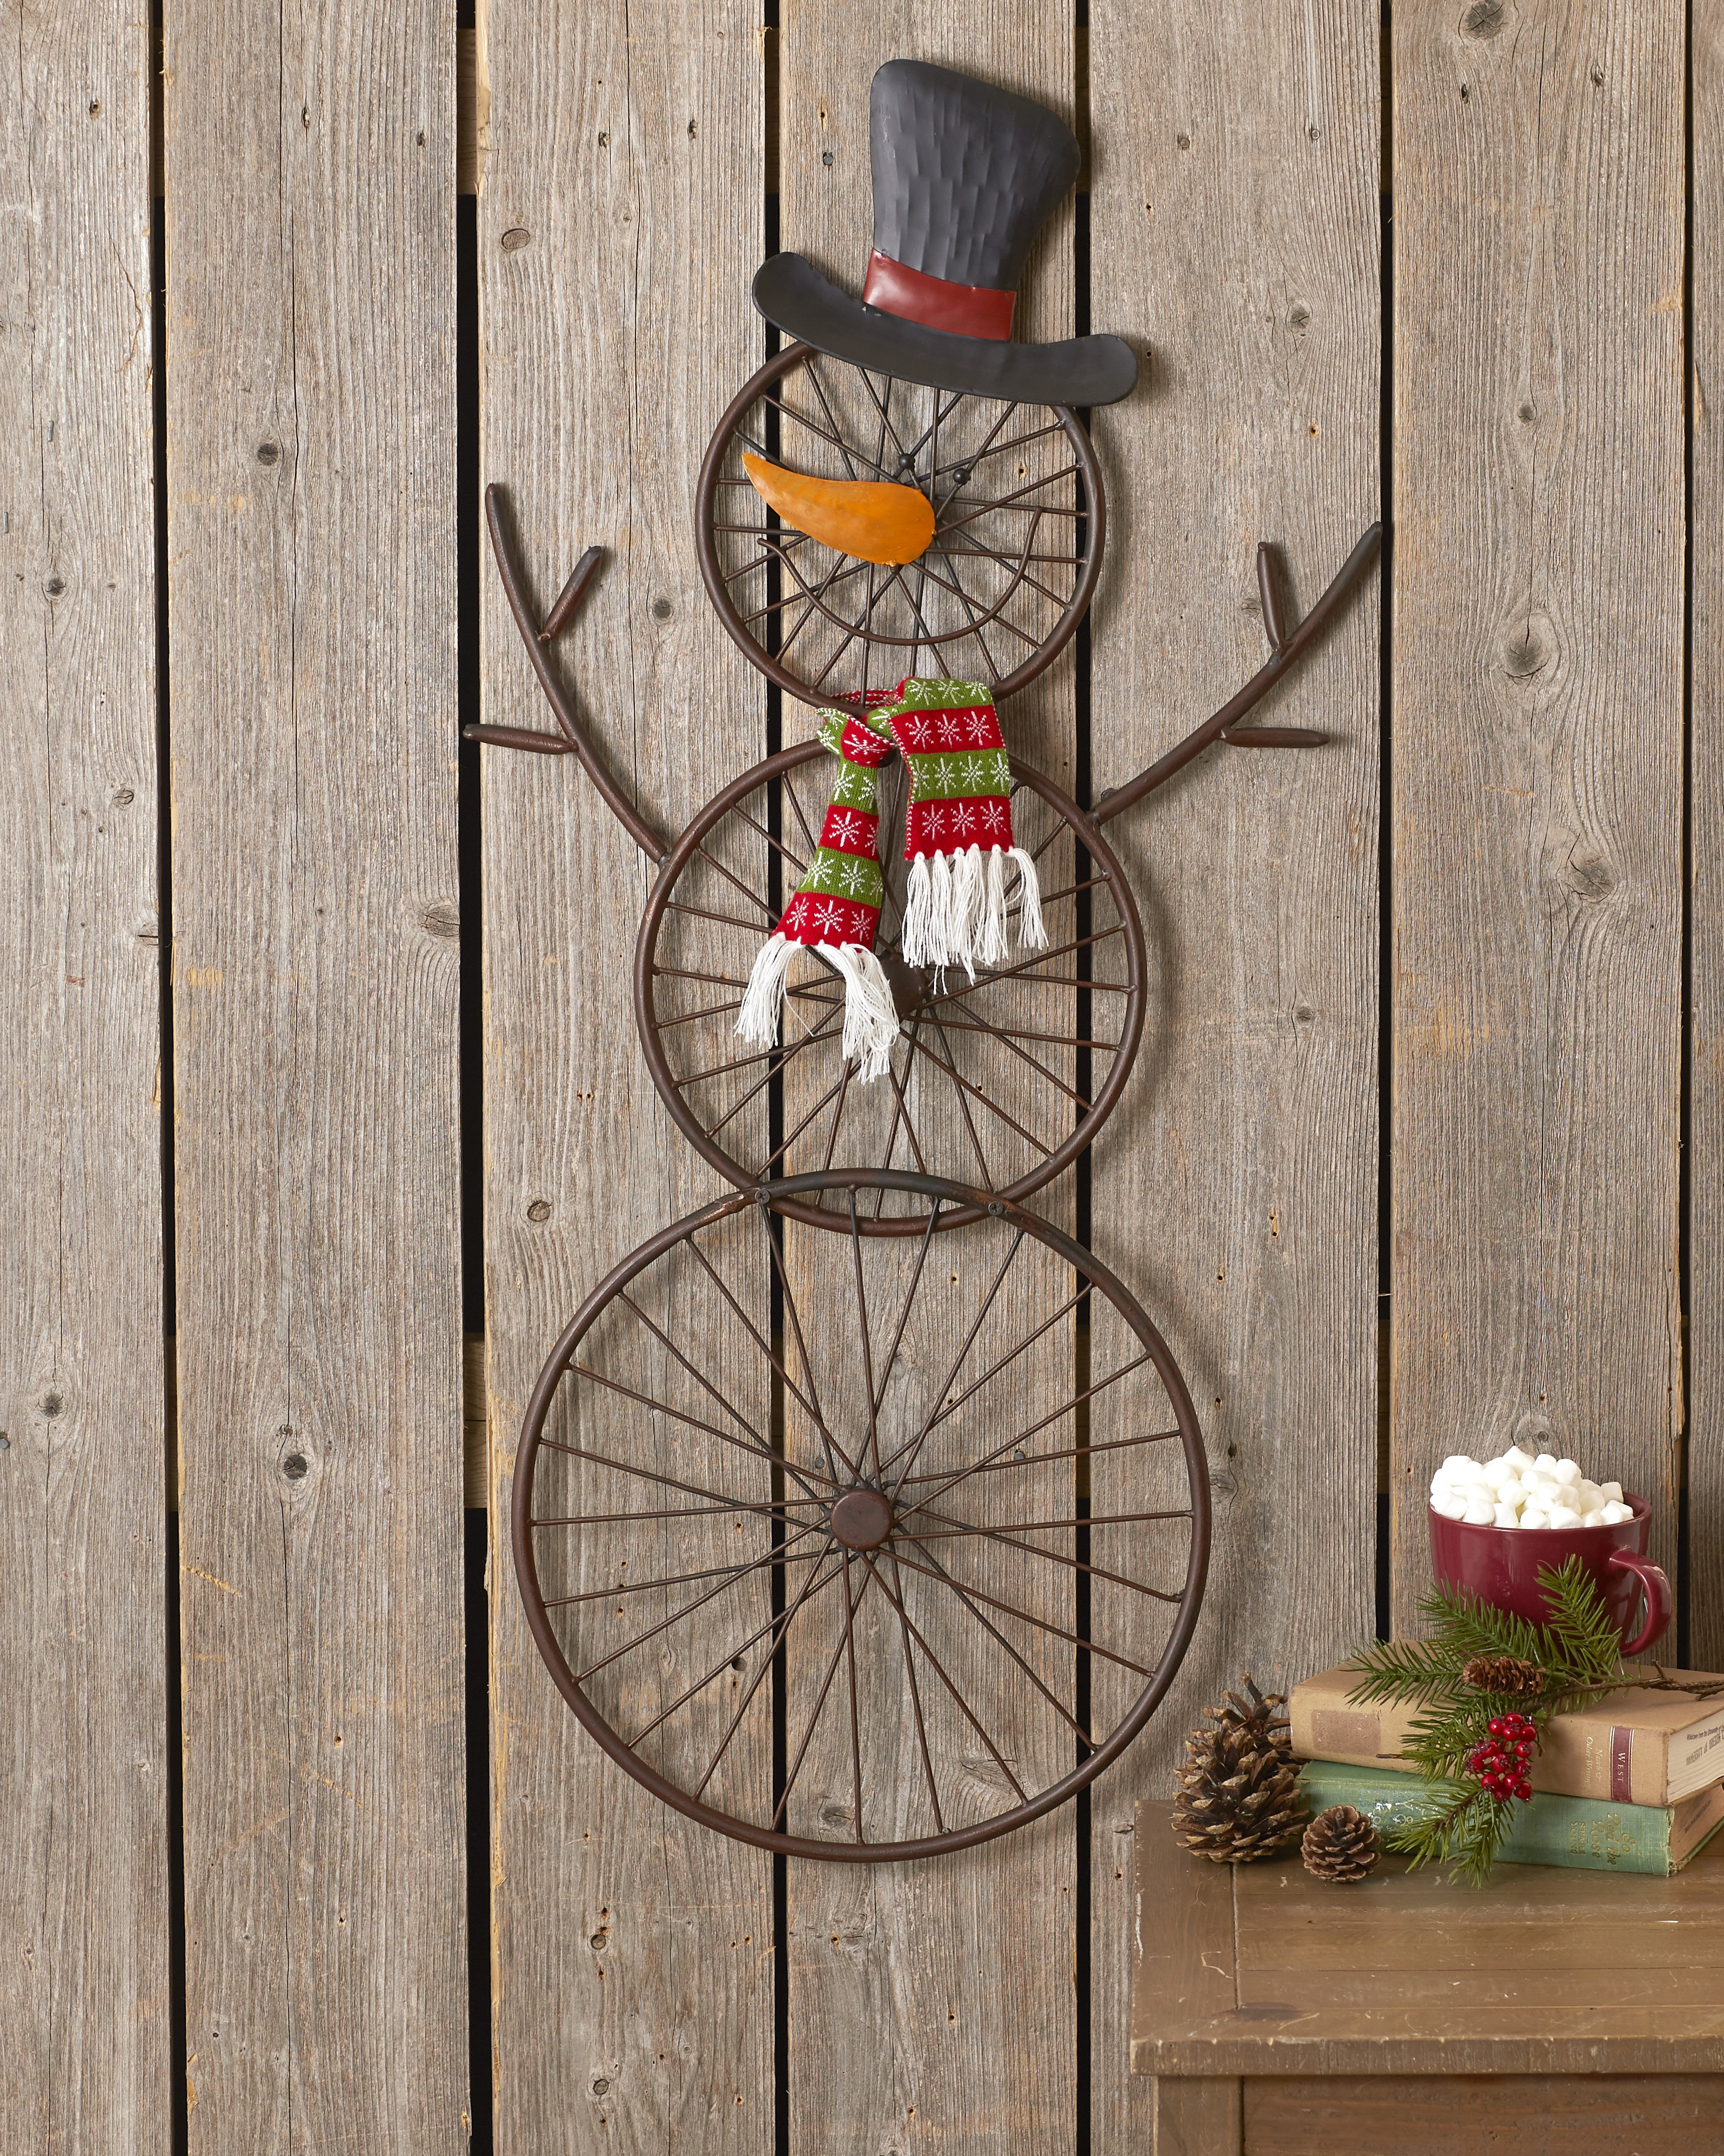 Snowman Holiday Wall Decoration With Hanging Bicycle Wheel Design 36 Ebay